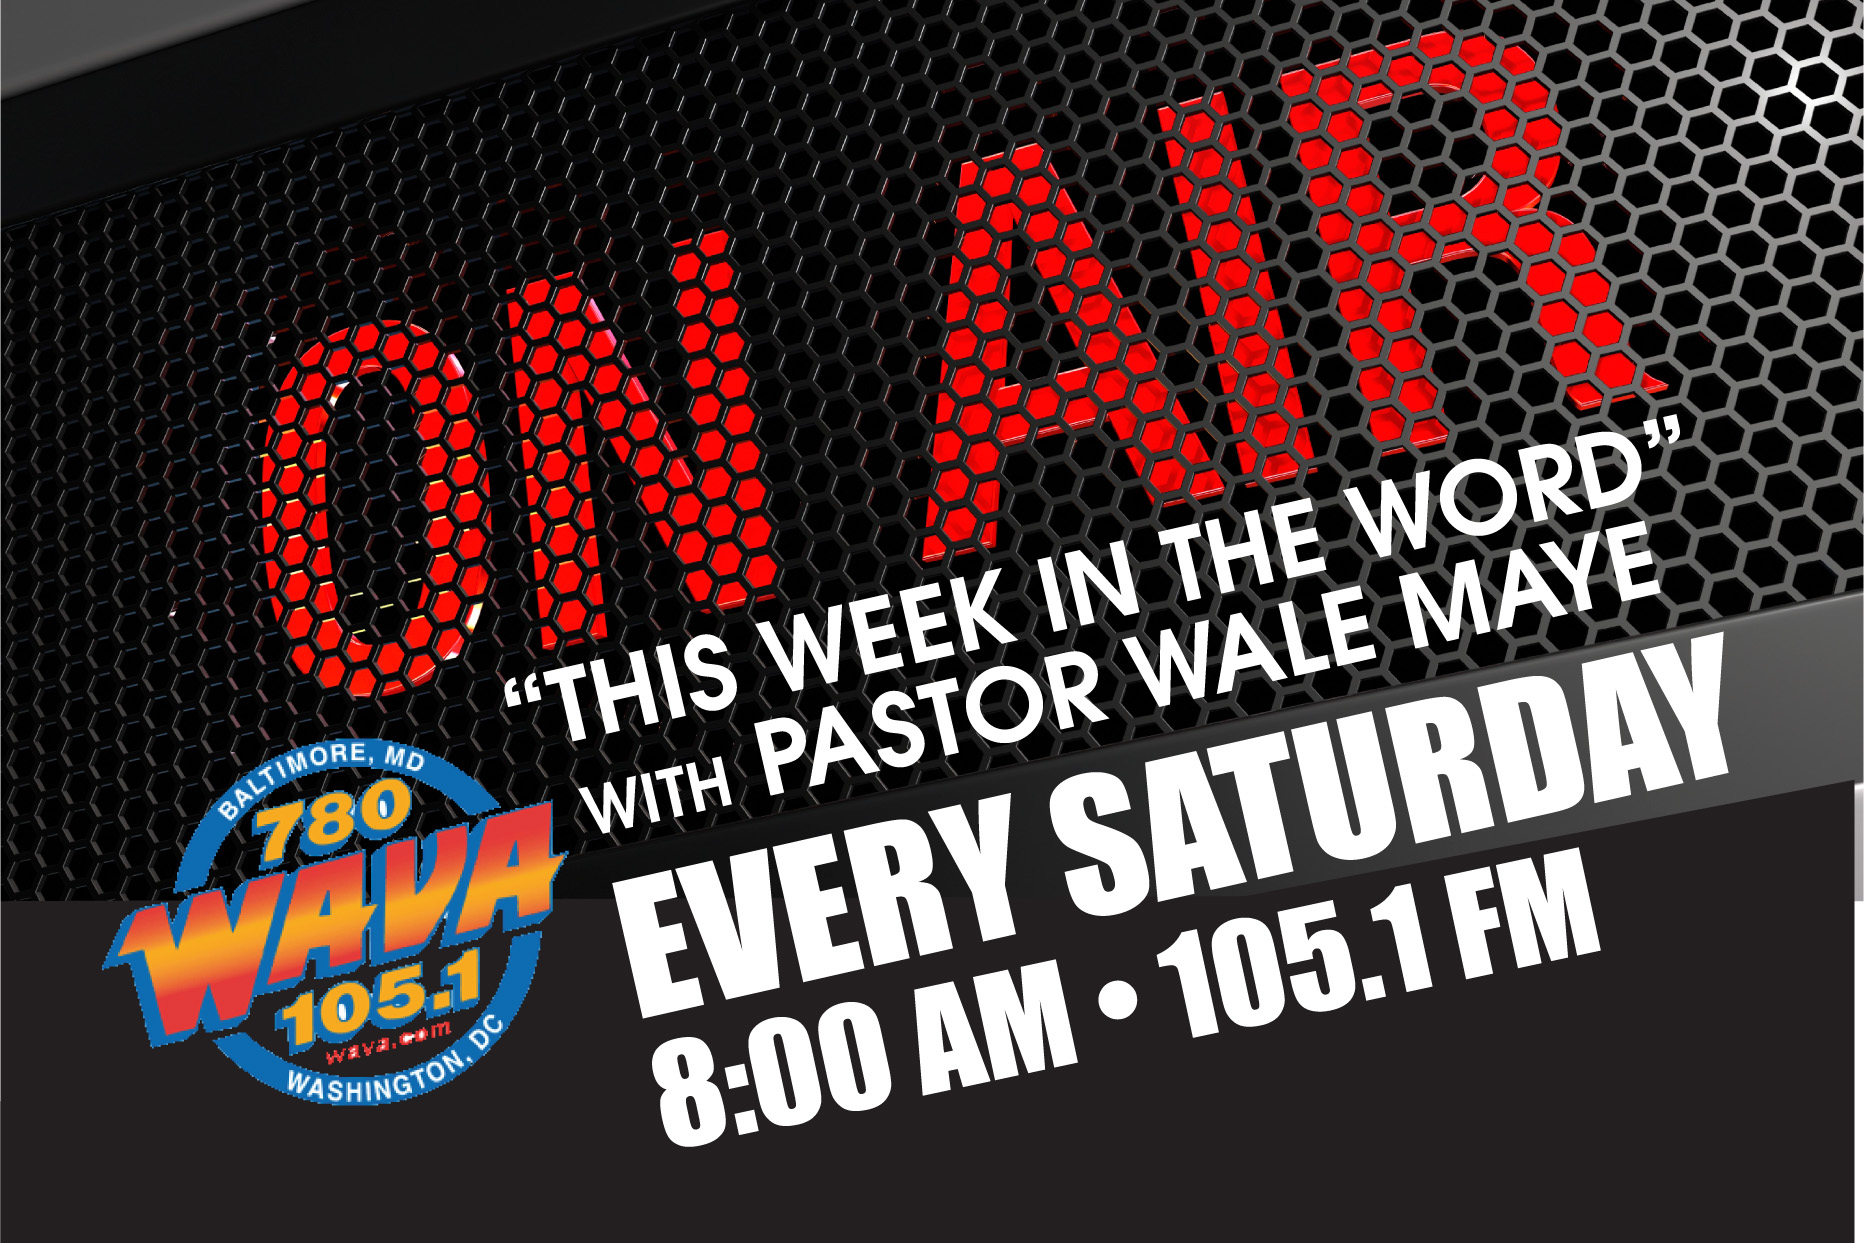 Listen to Pastor Wale on WAVA 105.1 FM